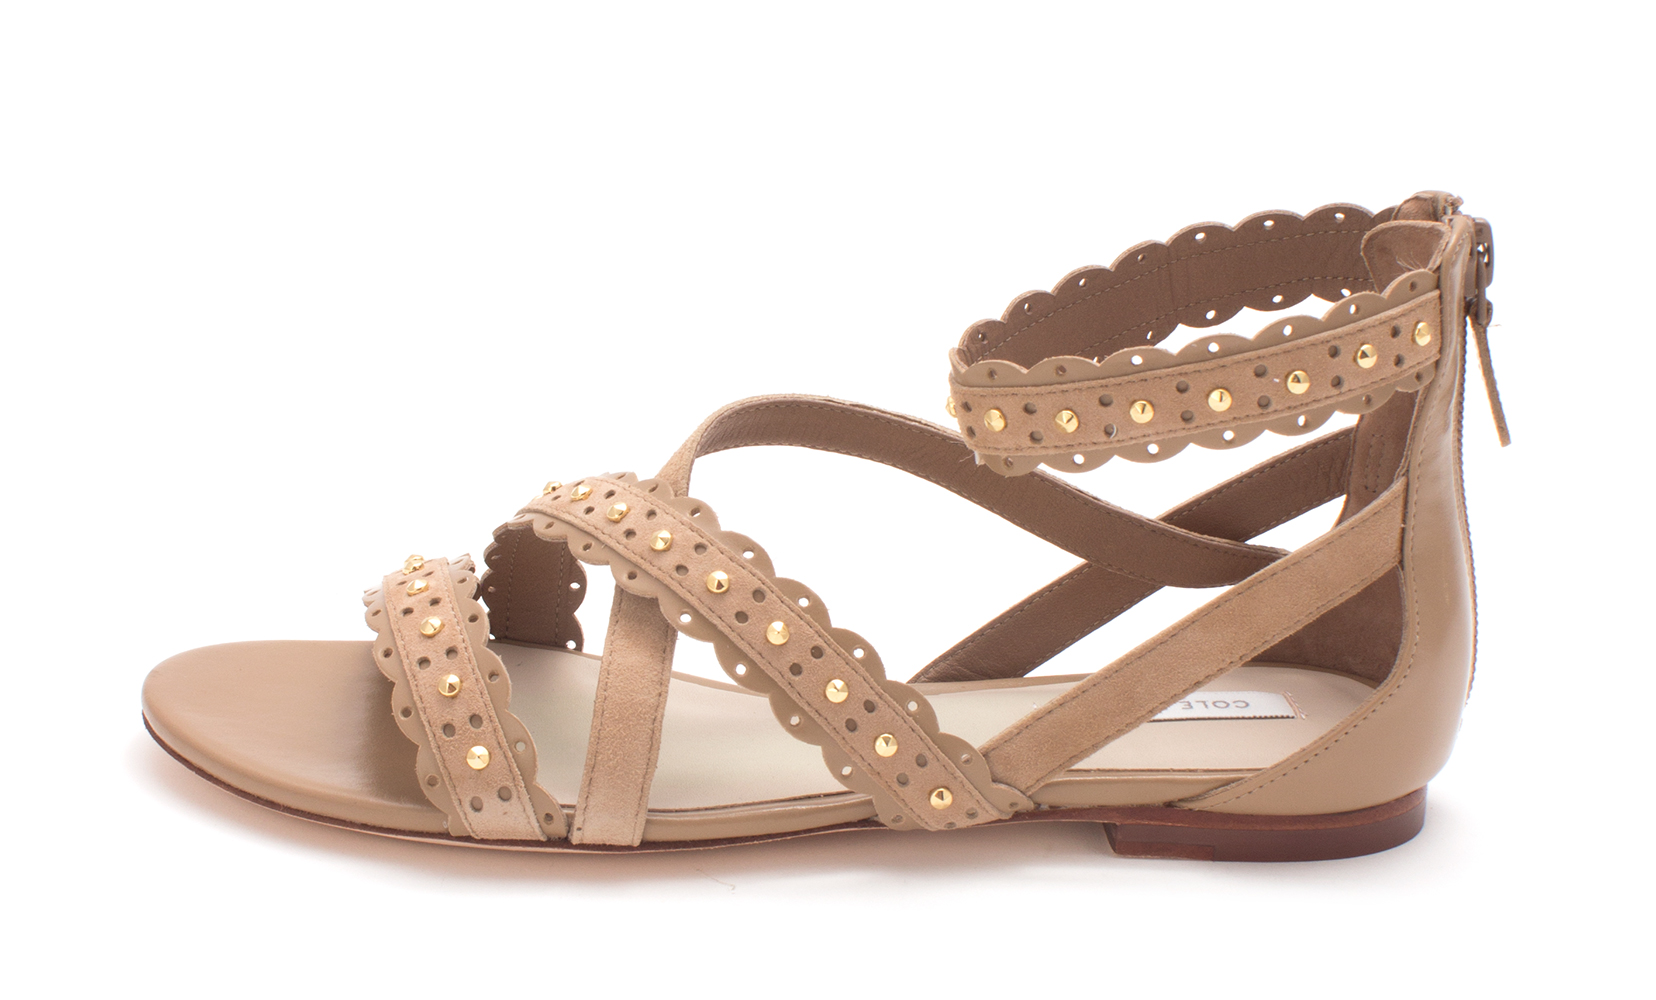 Cole Haan Womens Andrasam Open Toe Casual Strappy Sandals, Tan, Size 6.0